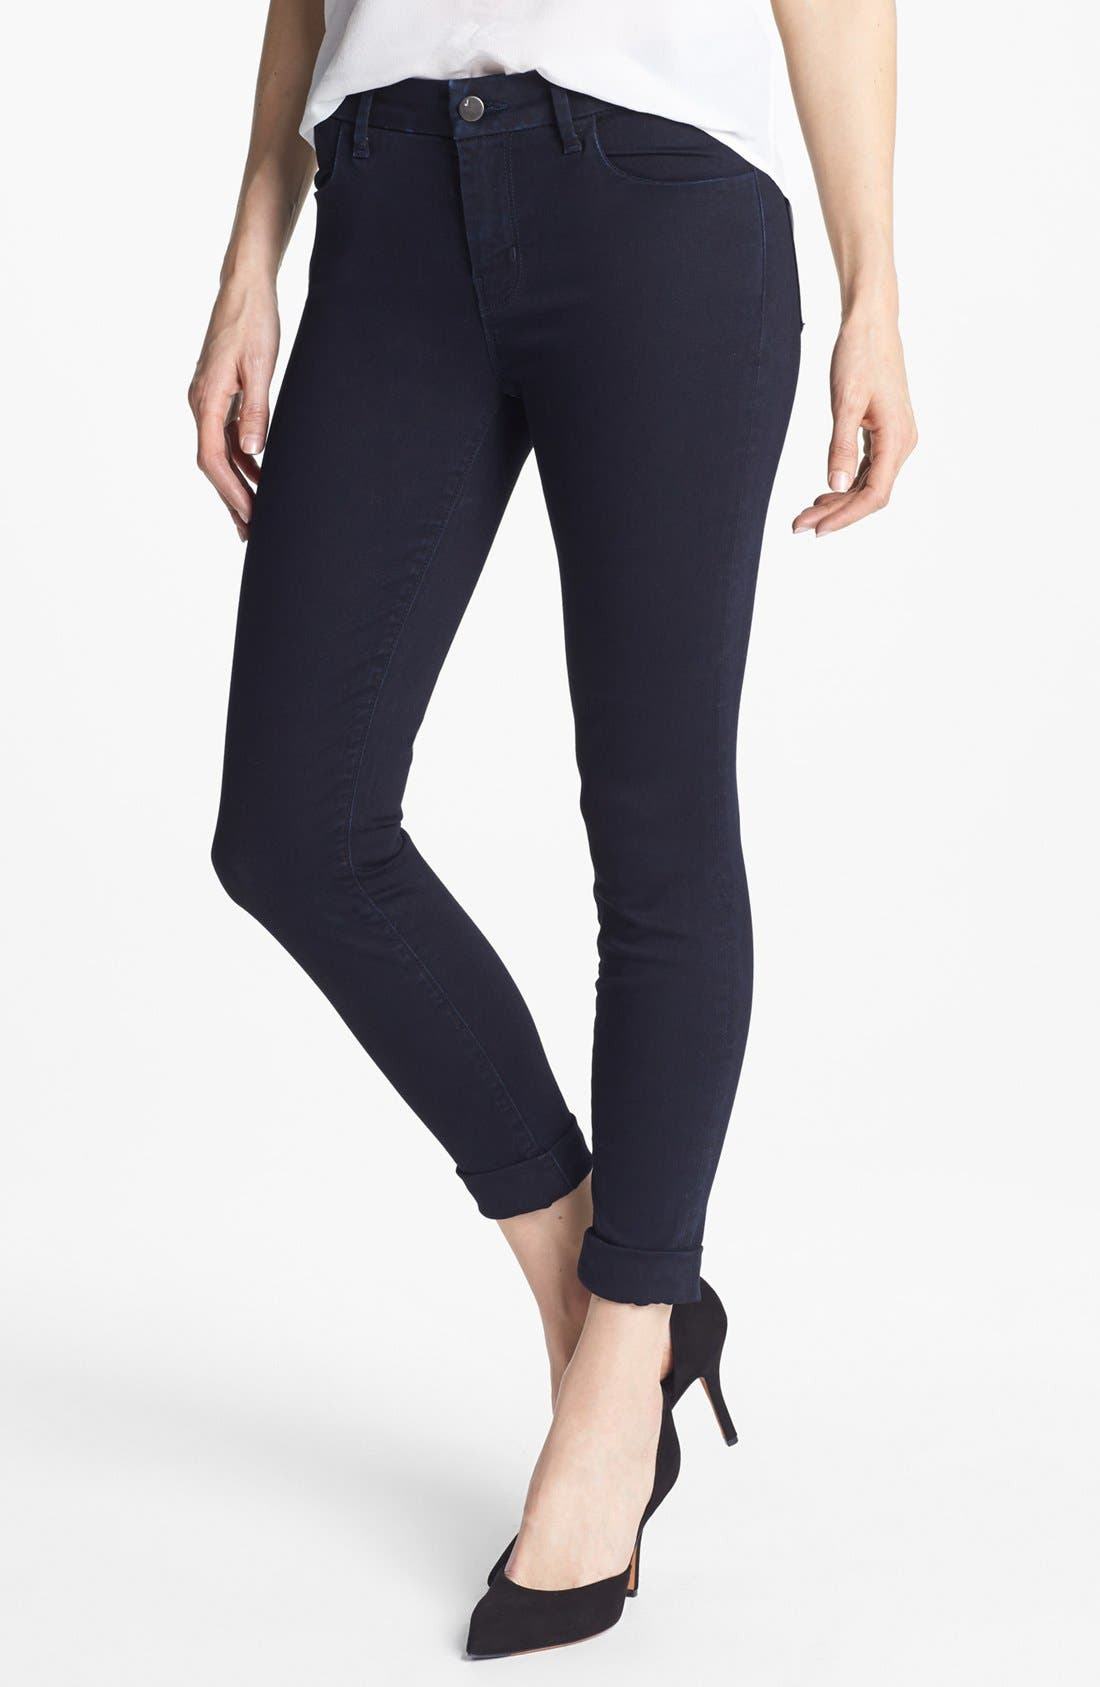 Alternate Image 1 Selected - J Brand '8020 Anja' Mid Rise Crop Skinny Jeans (Vision)